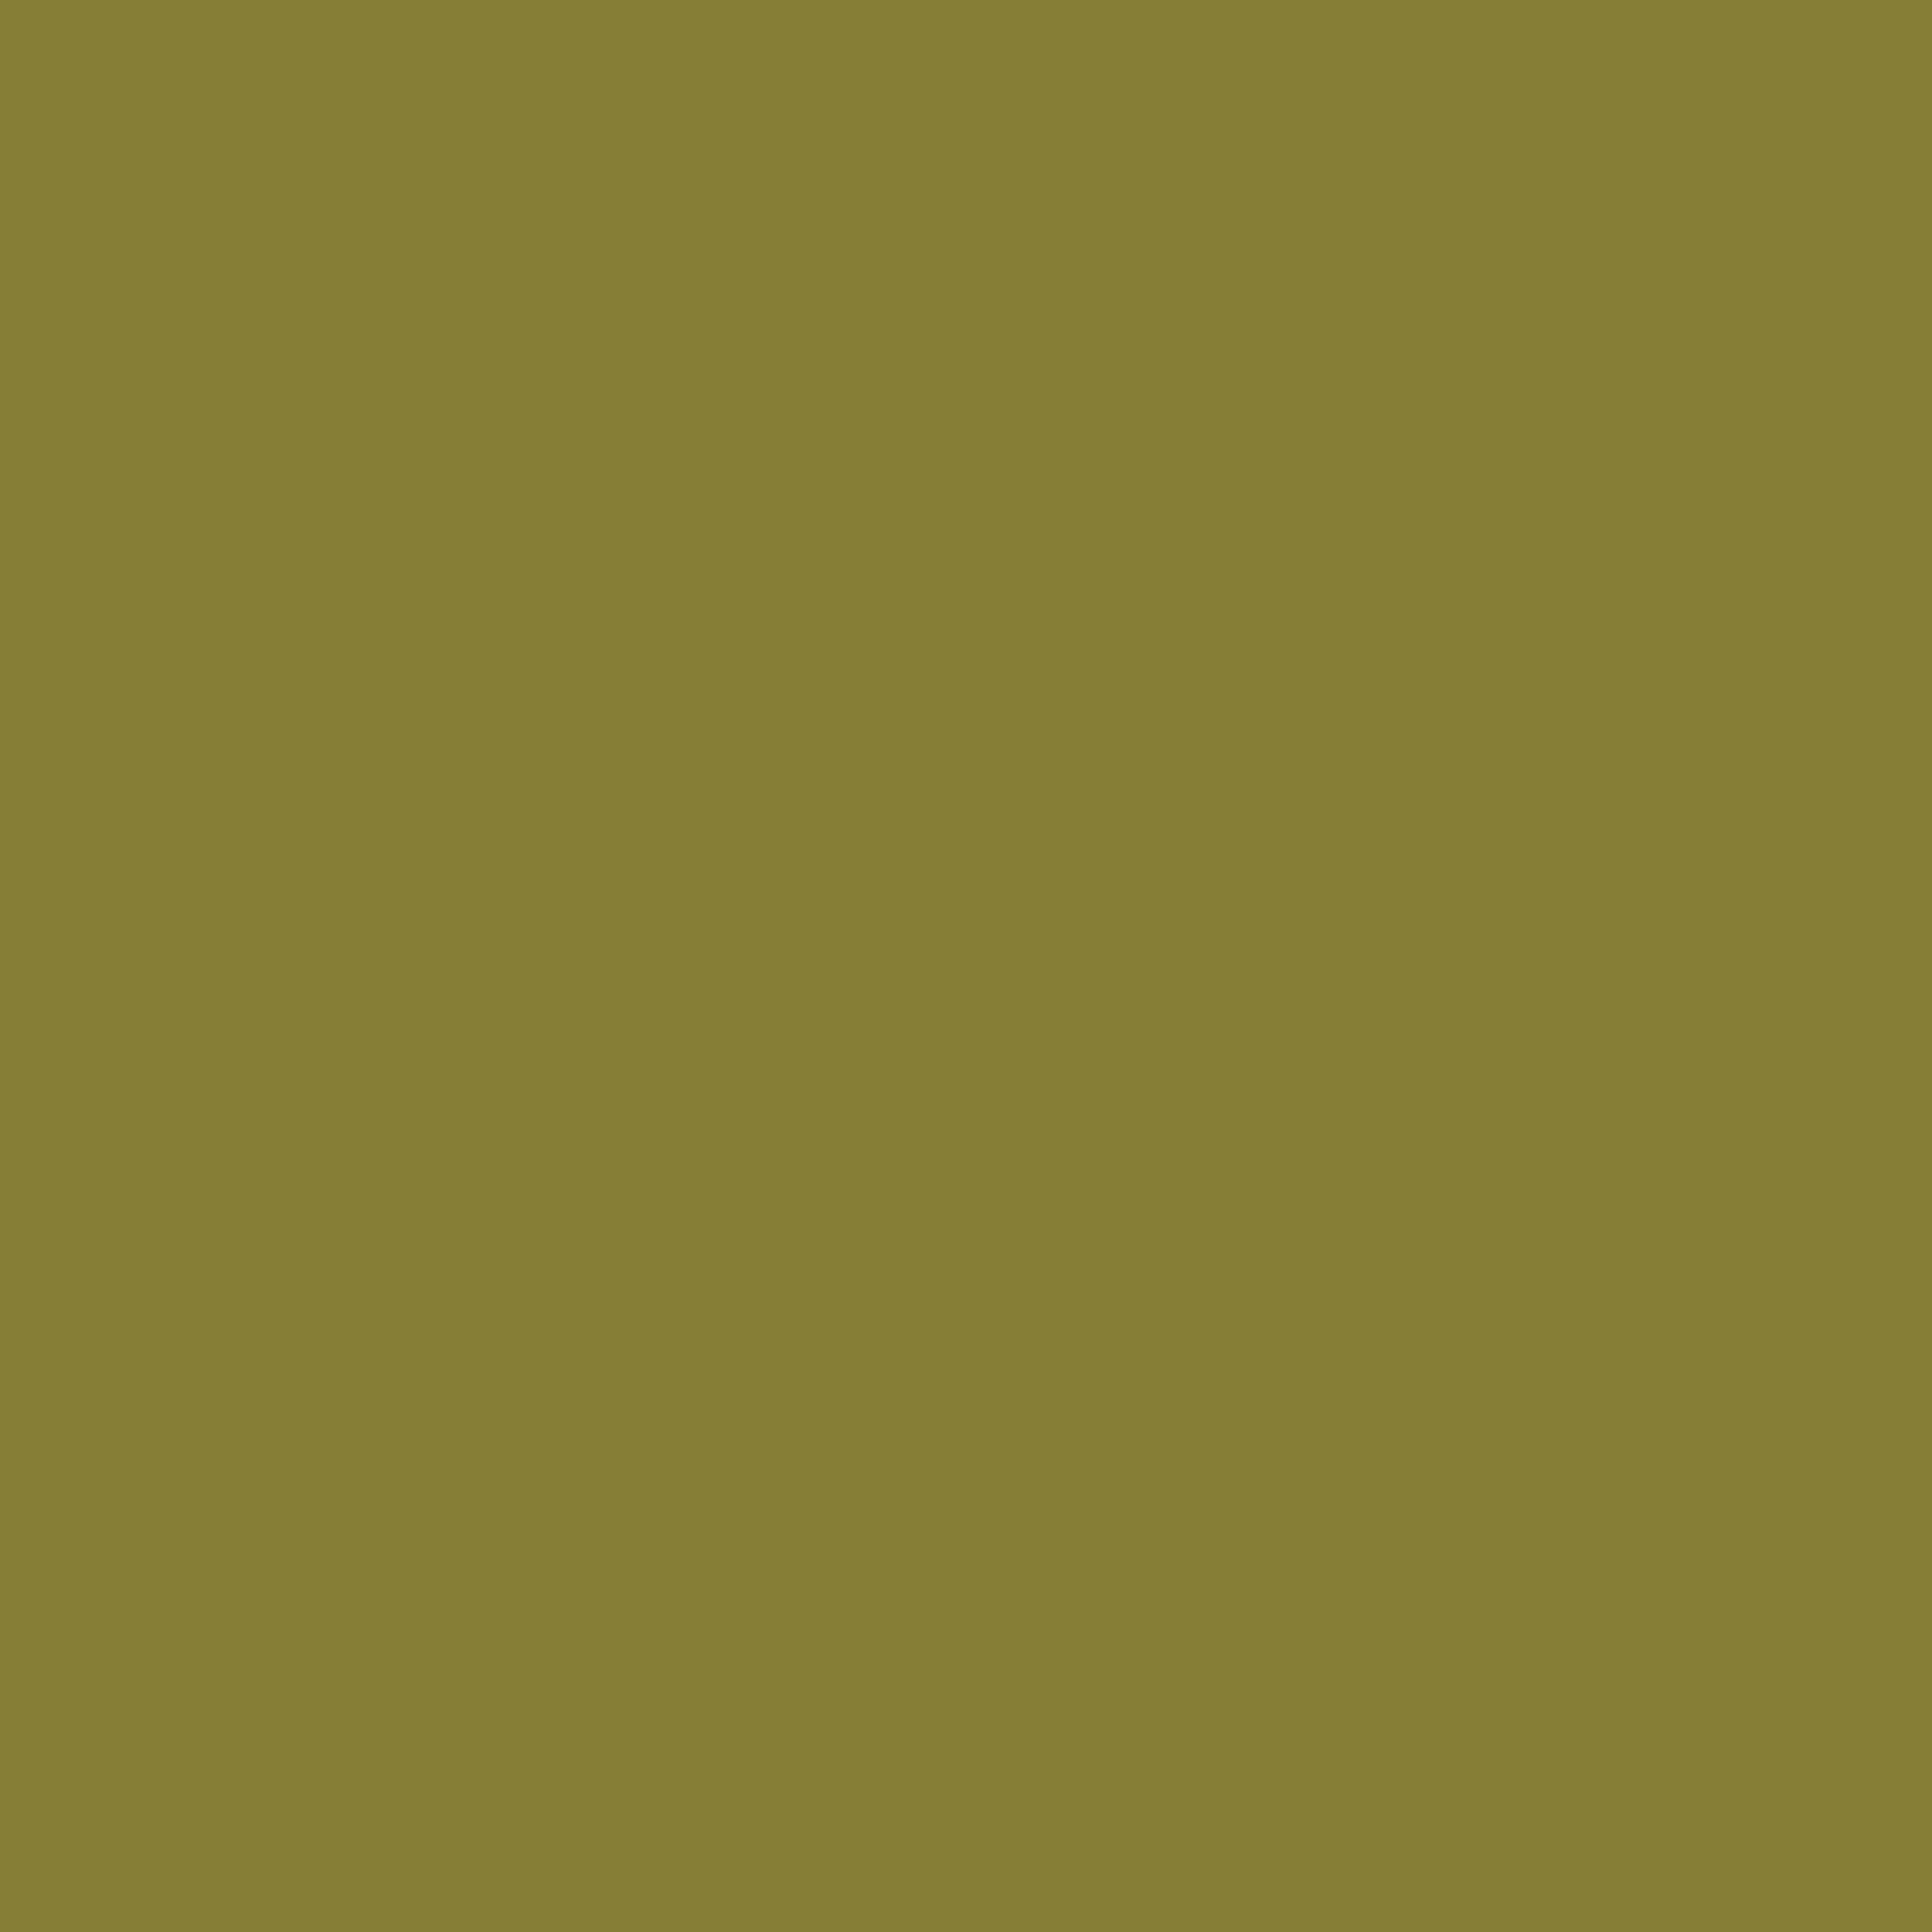 3600x3600 Old Moss Green Solid Color Background